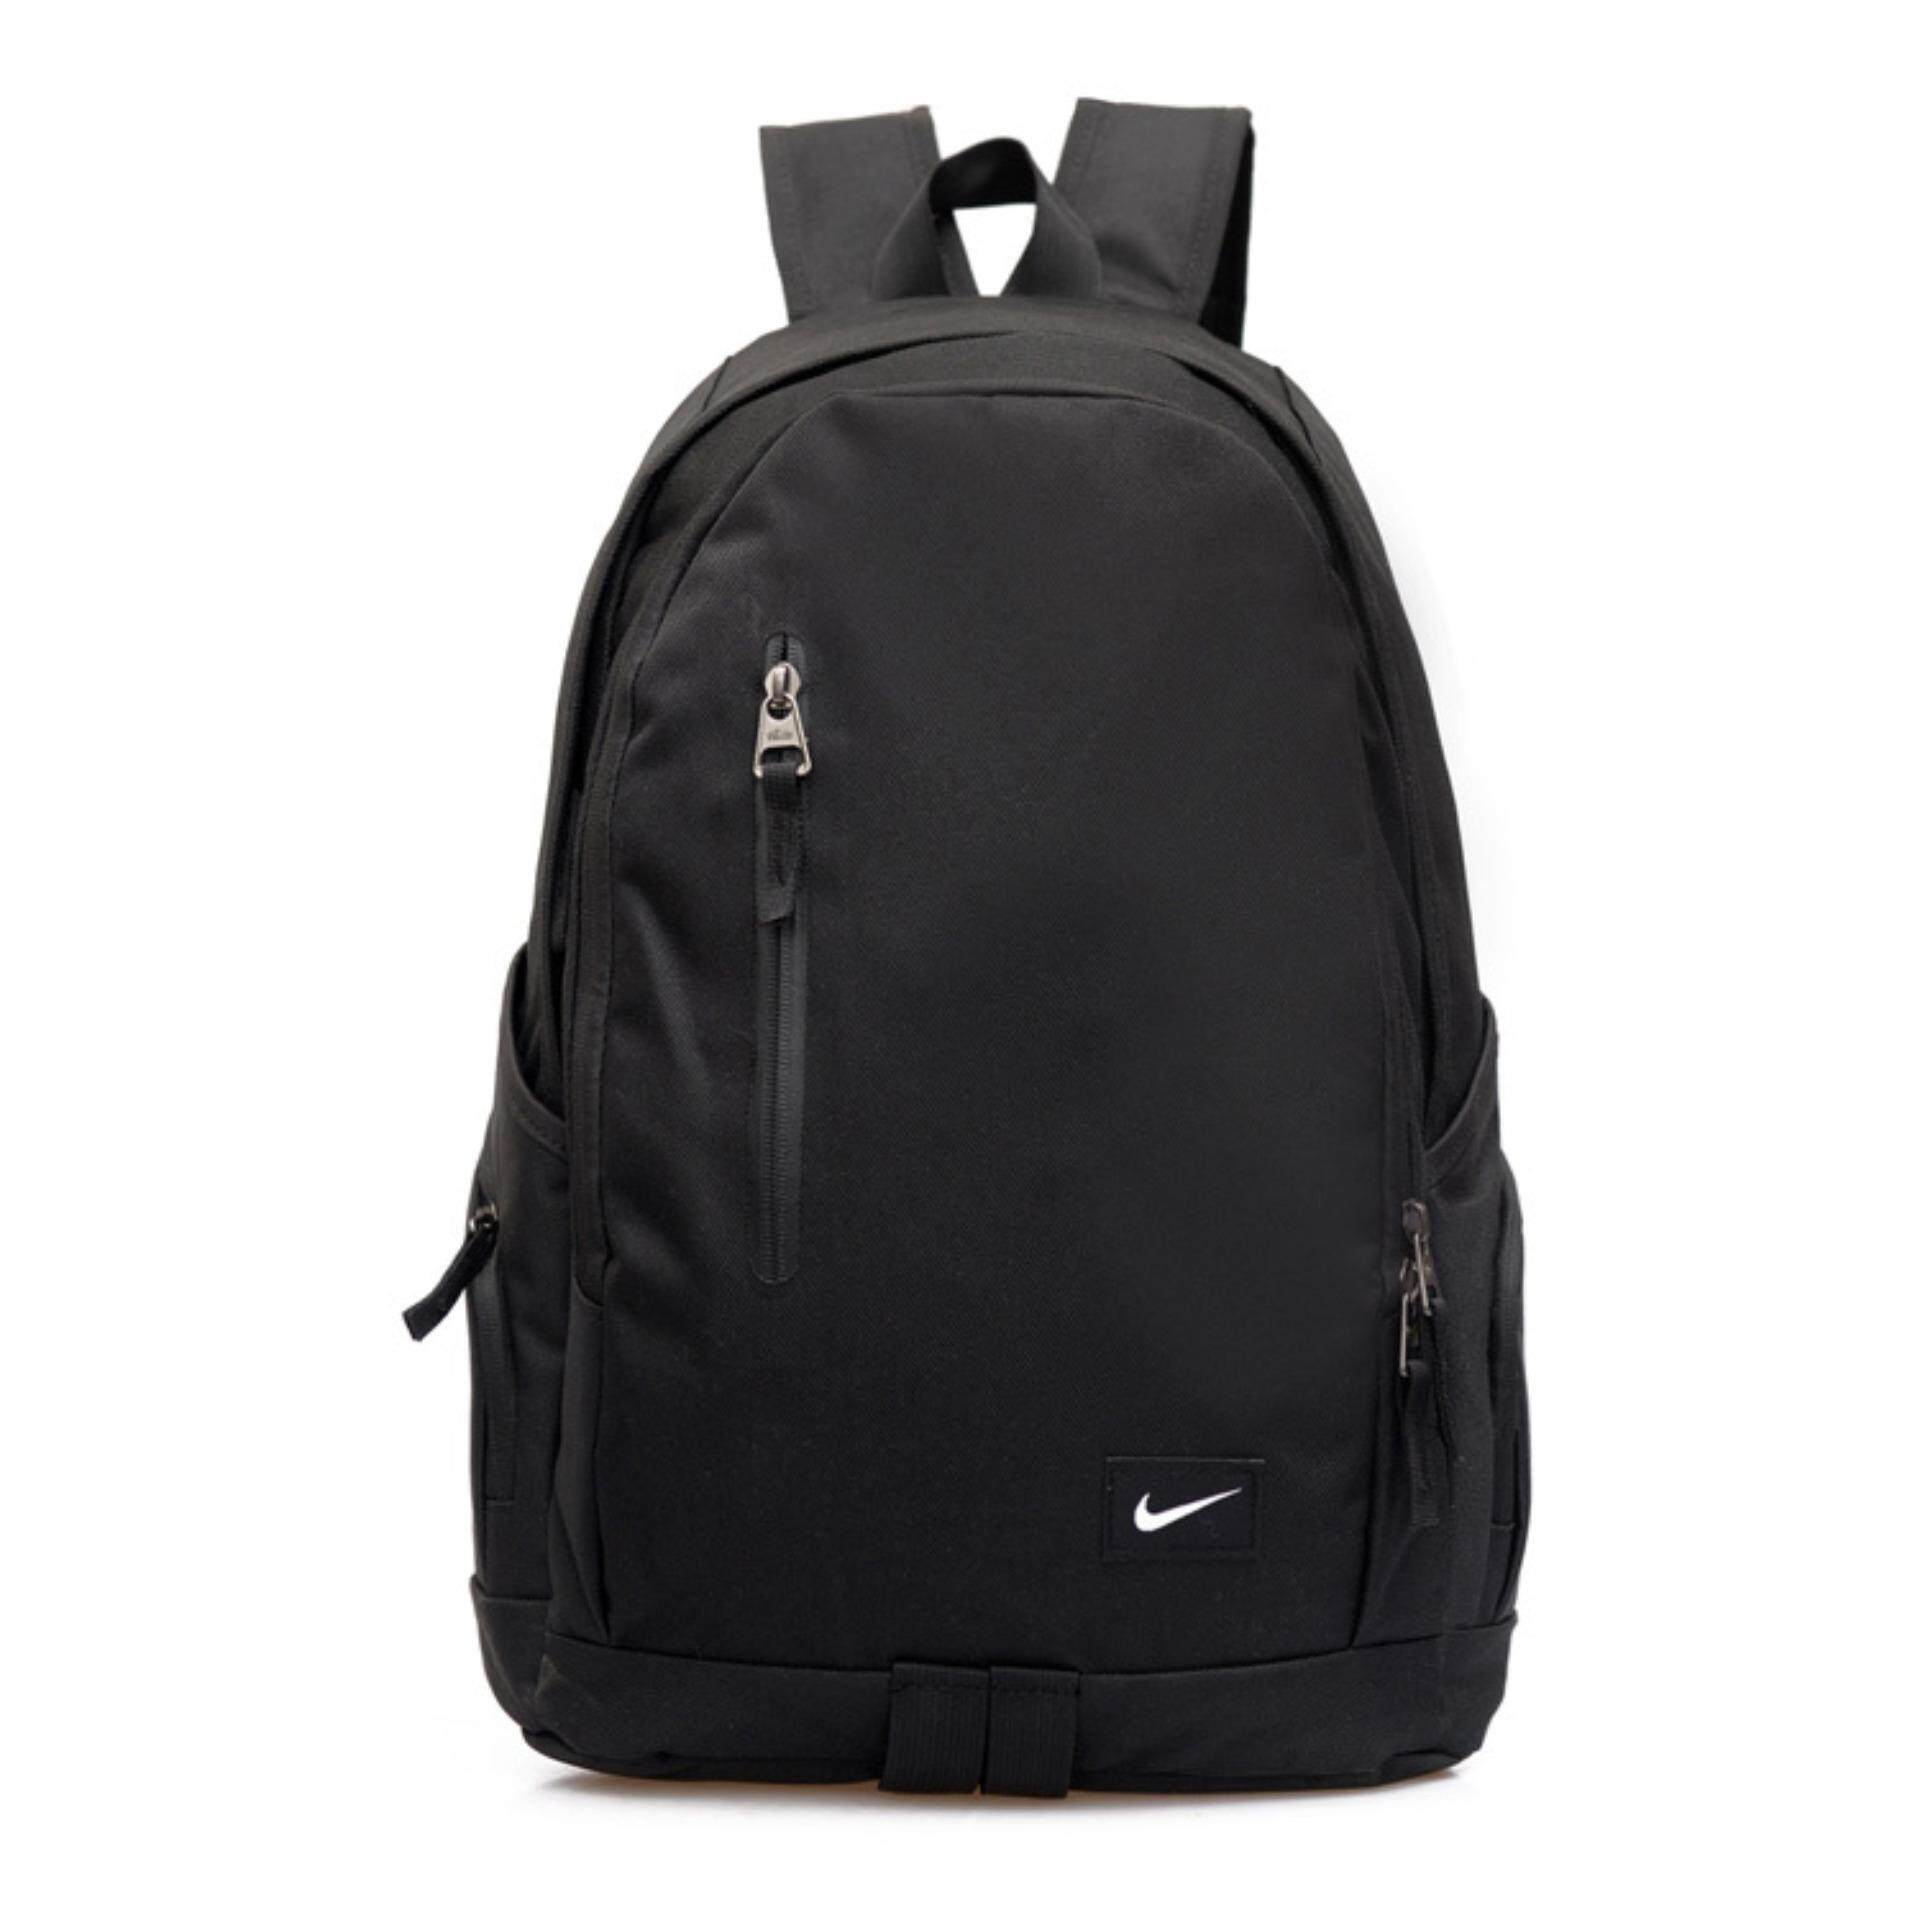 Nike Products Accessories At Best Price In Malaysia Lazada Topi Trucker Adidas Keren School Backpacks Laptop Backpack Shoulder Bag Travel